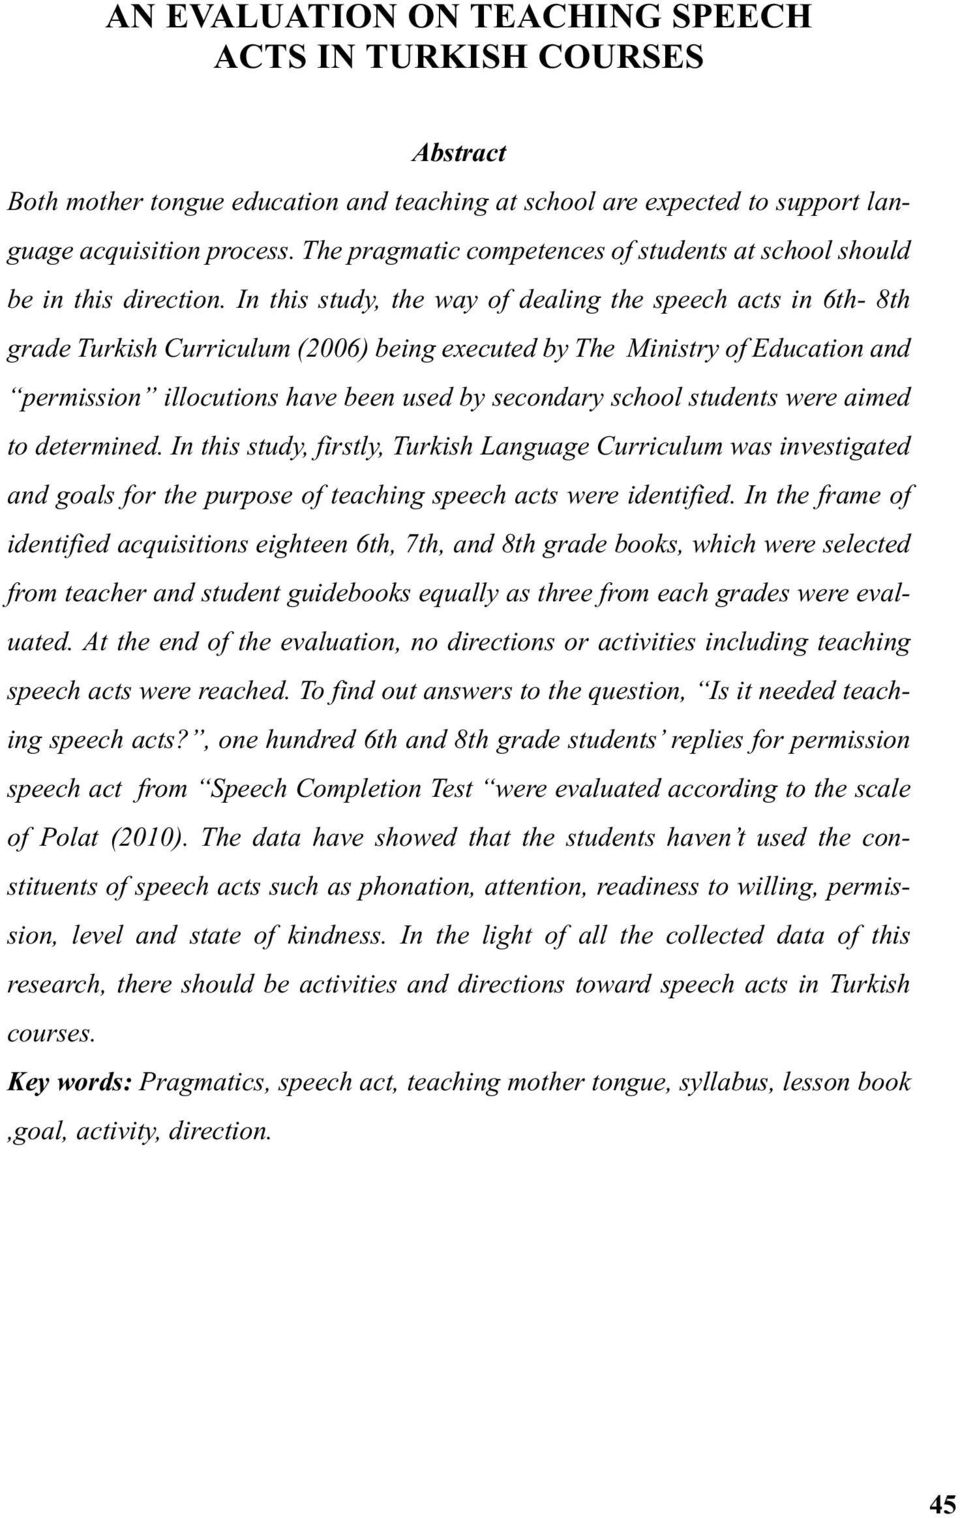 In this study, the way of dealing the speech acts in 6th- 8th grade Turkish Curriculum (2006) being executed by The Ministry of Education and permission illocutions have been used by secondary school